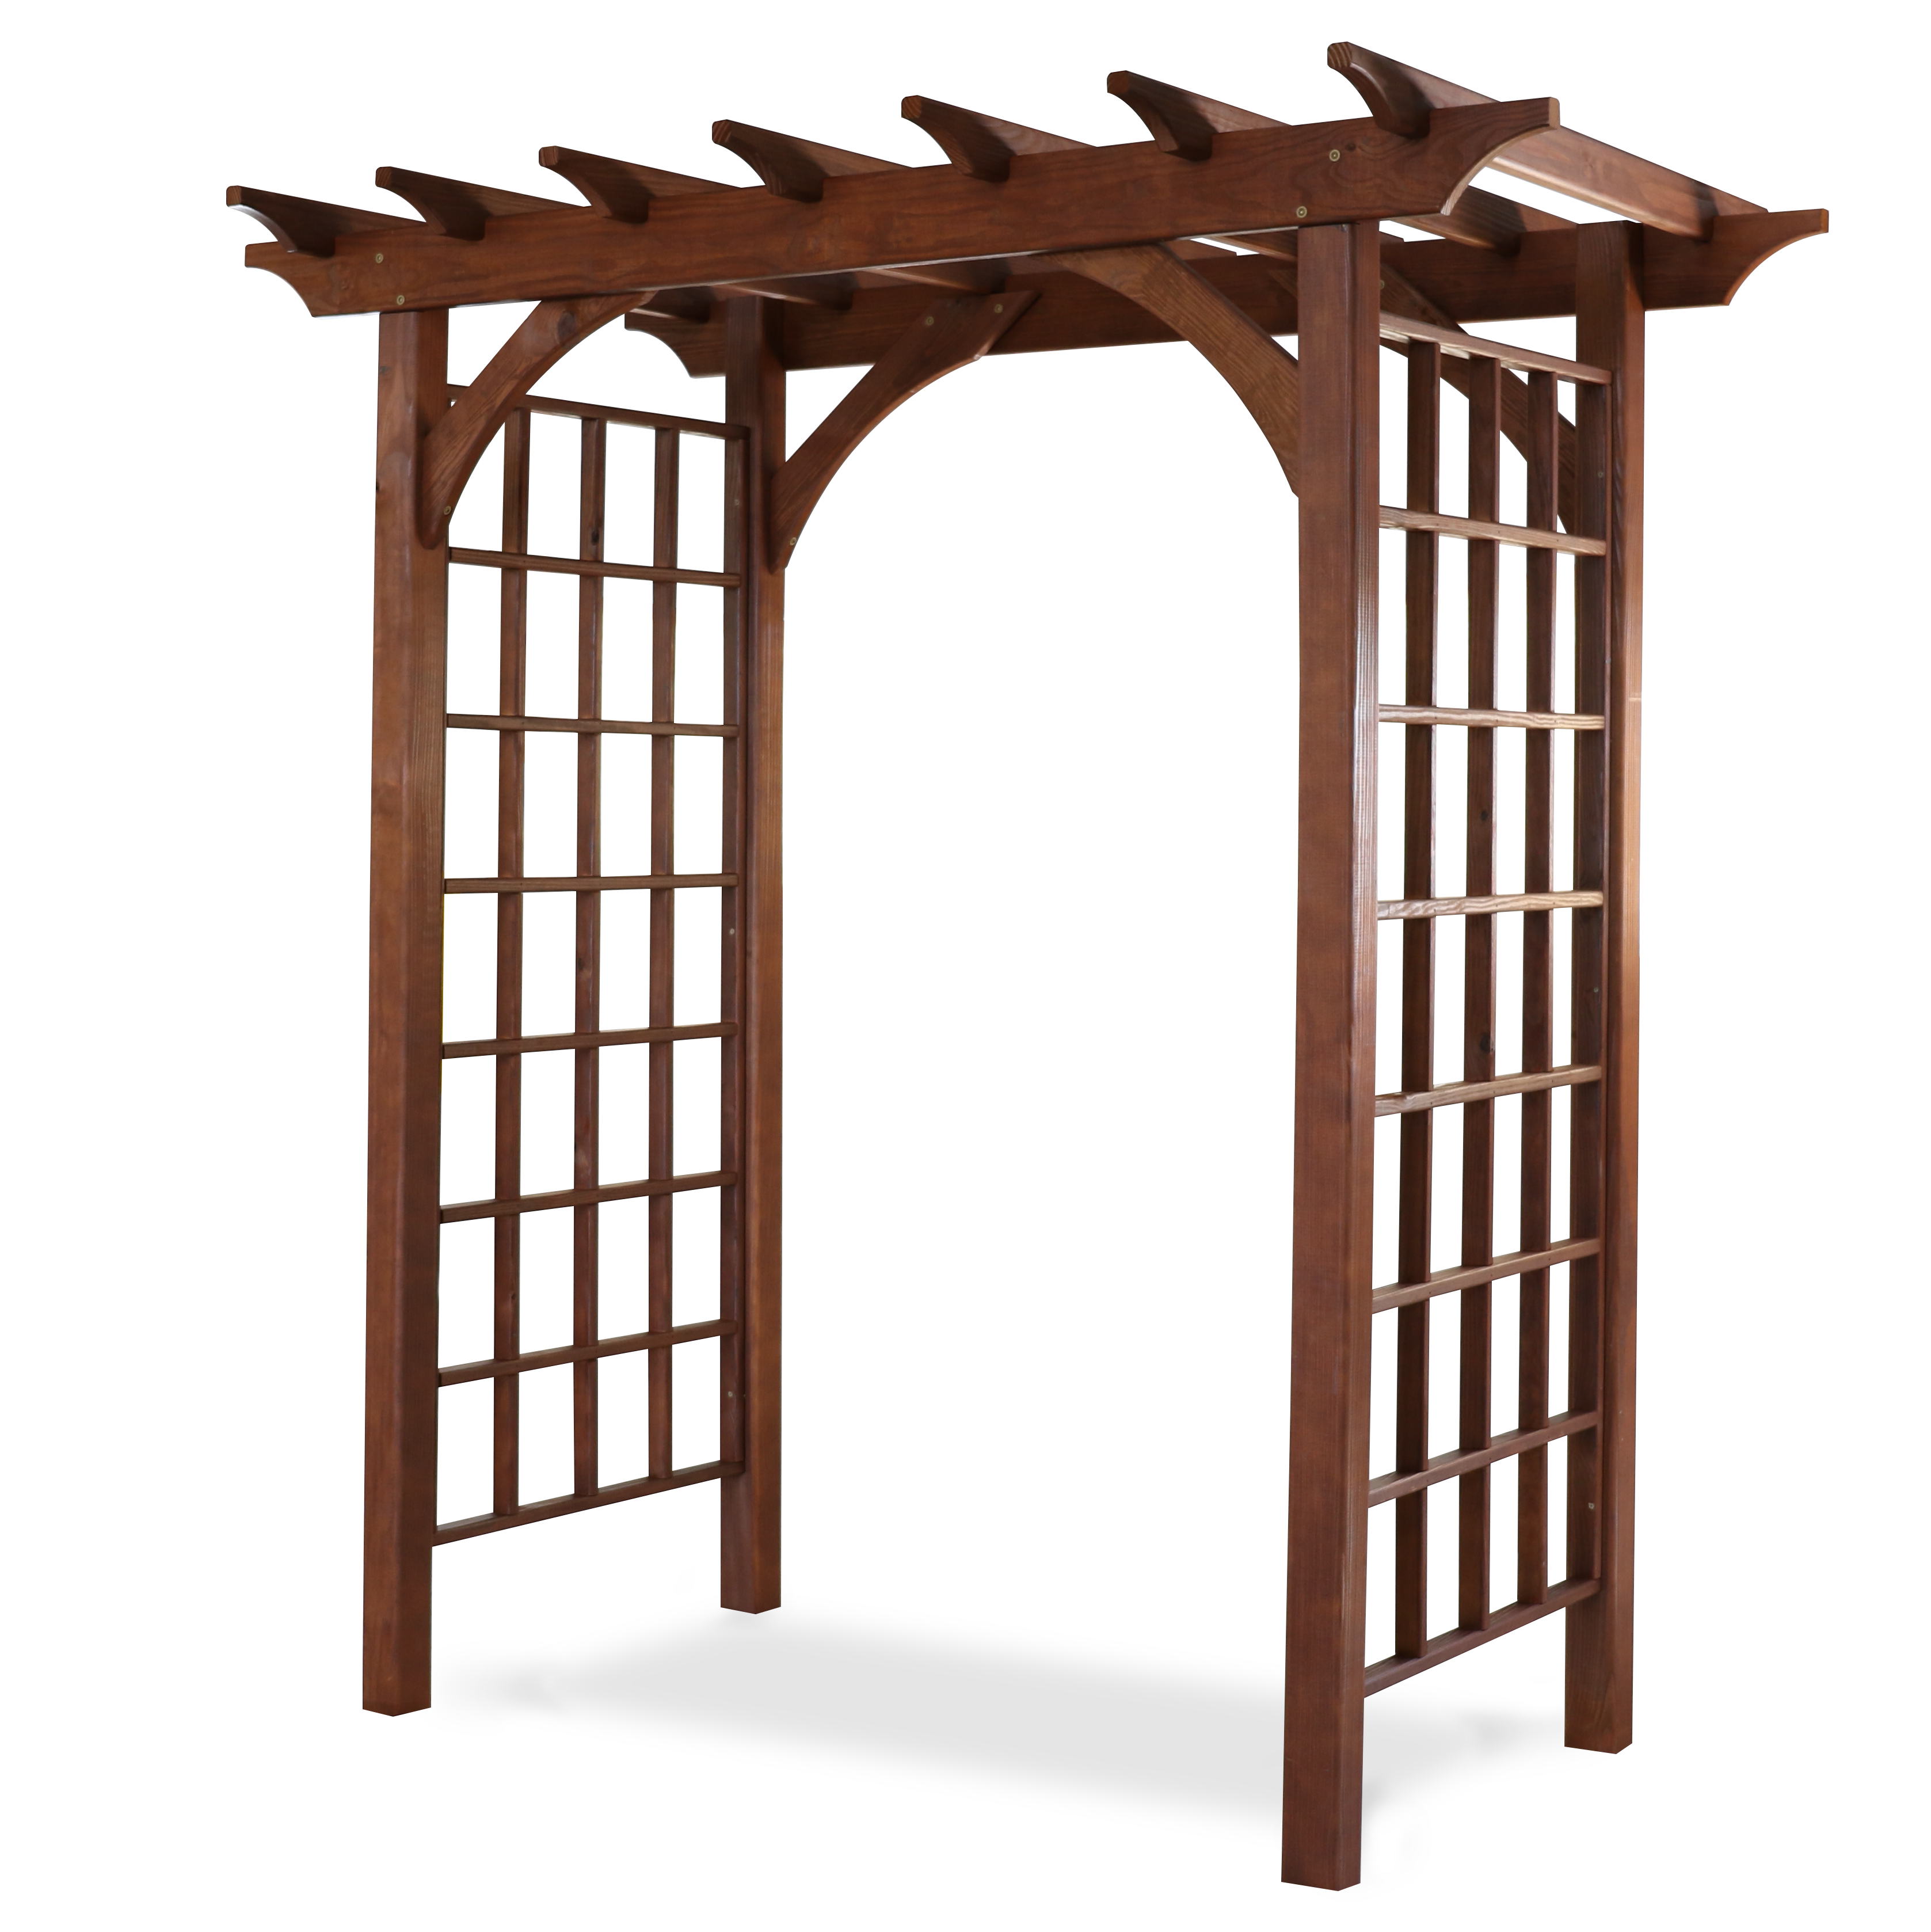 30 inch by 48 inch Canterbury style arbor.